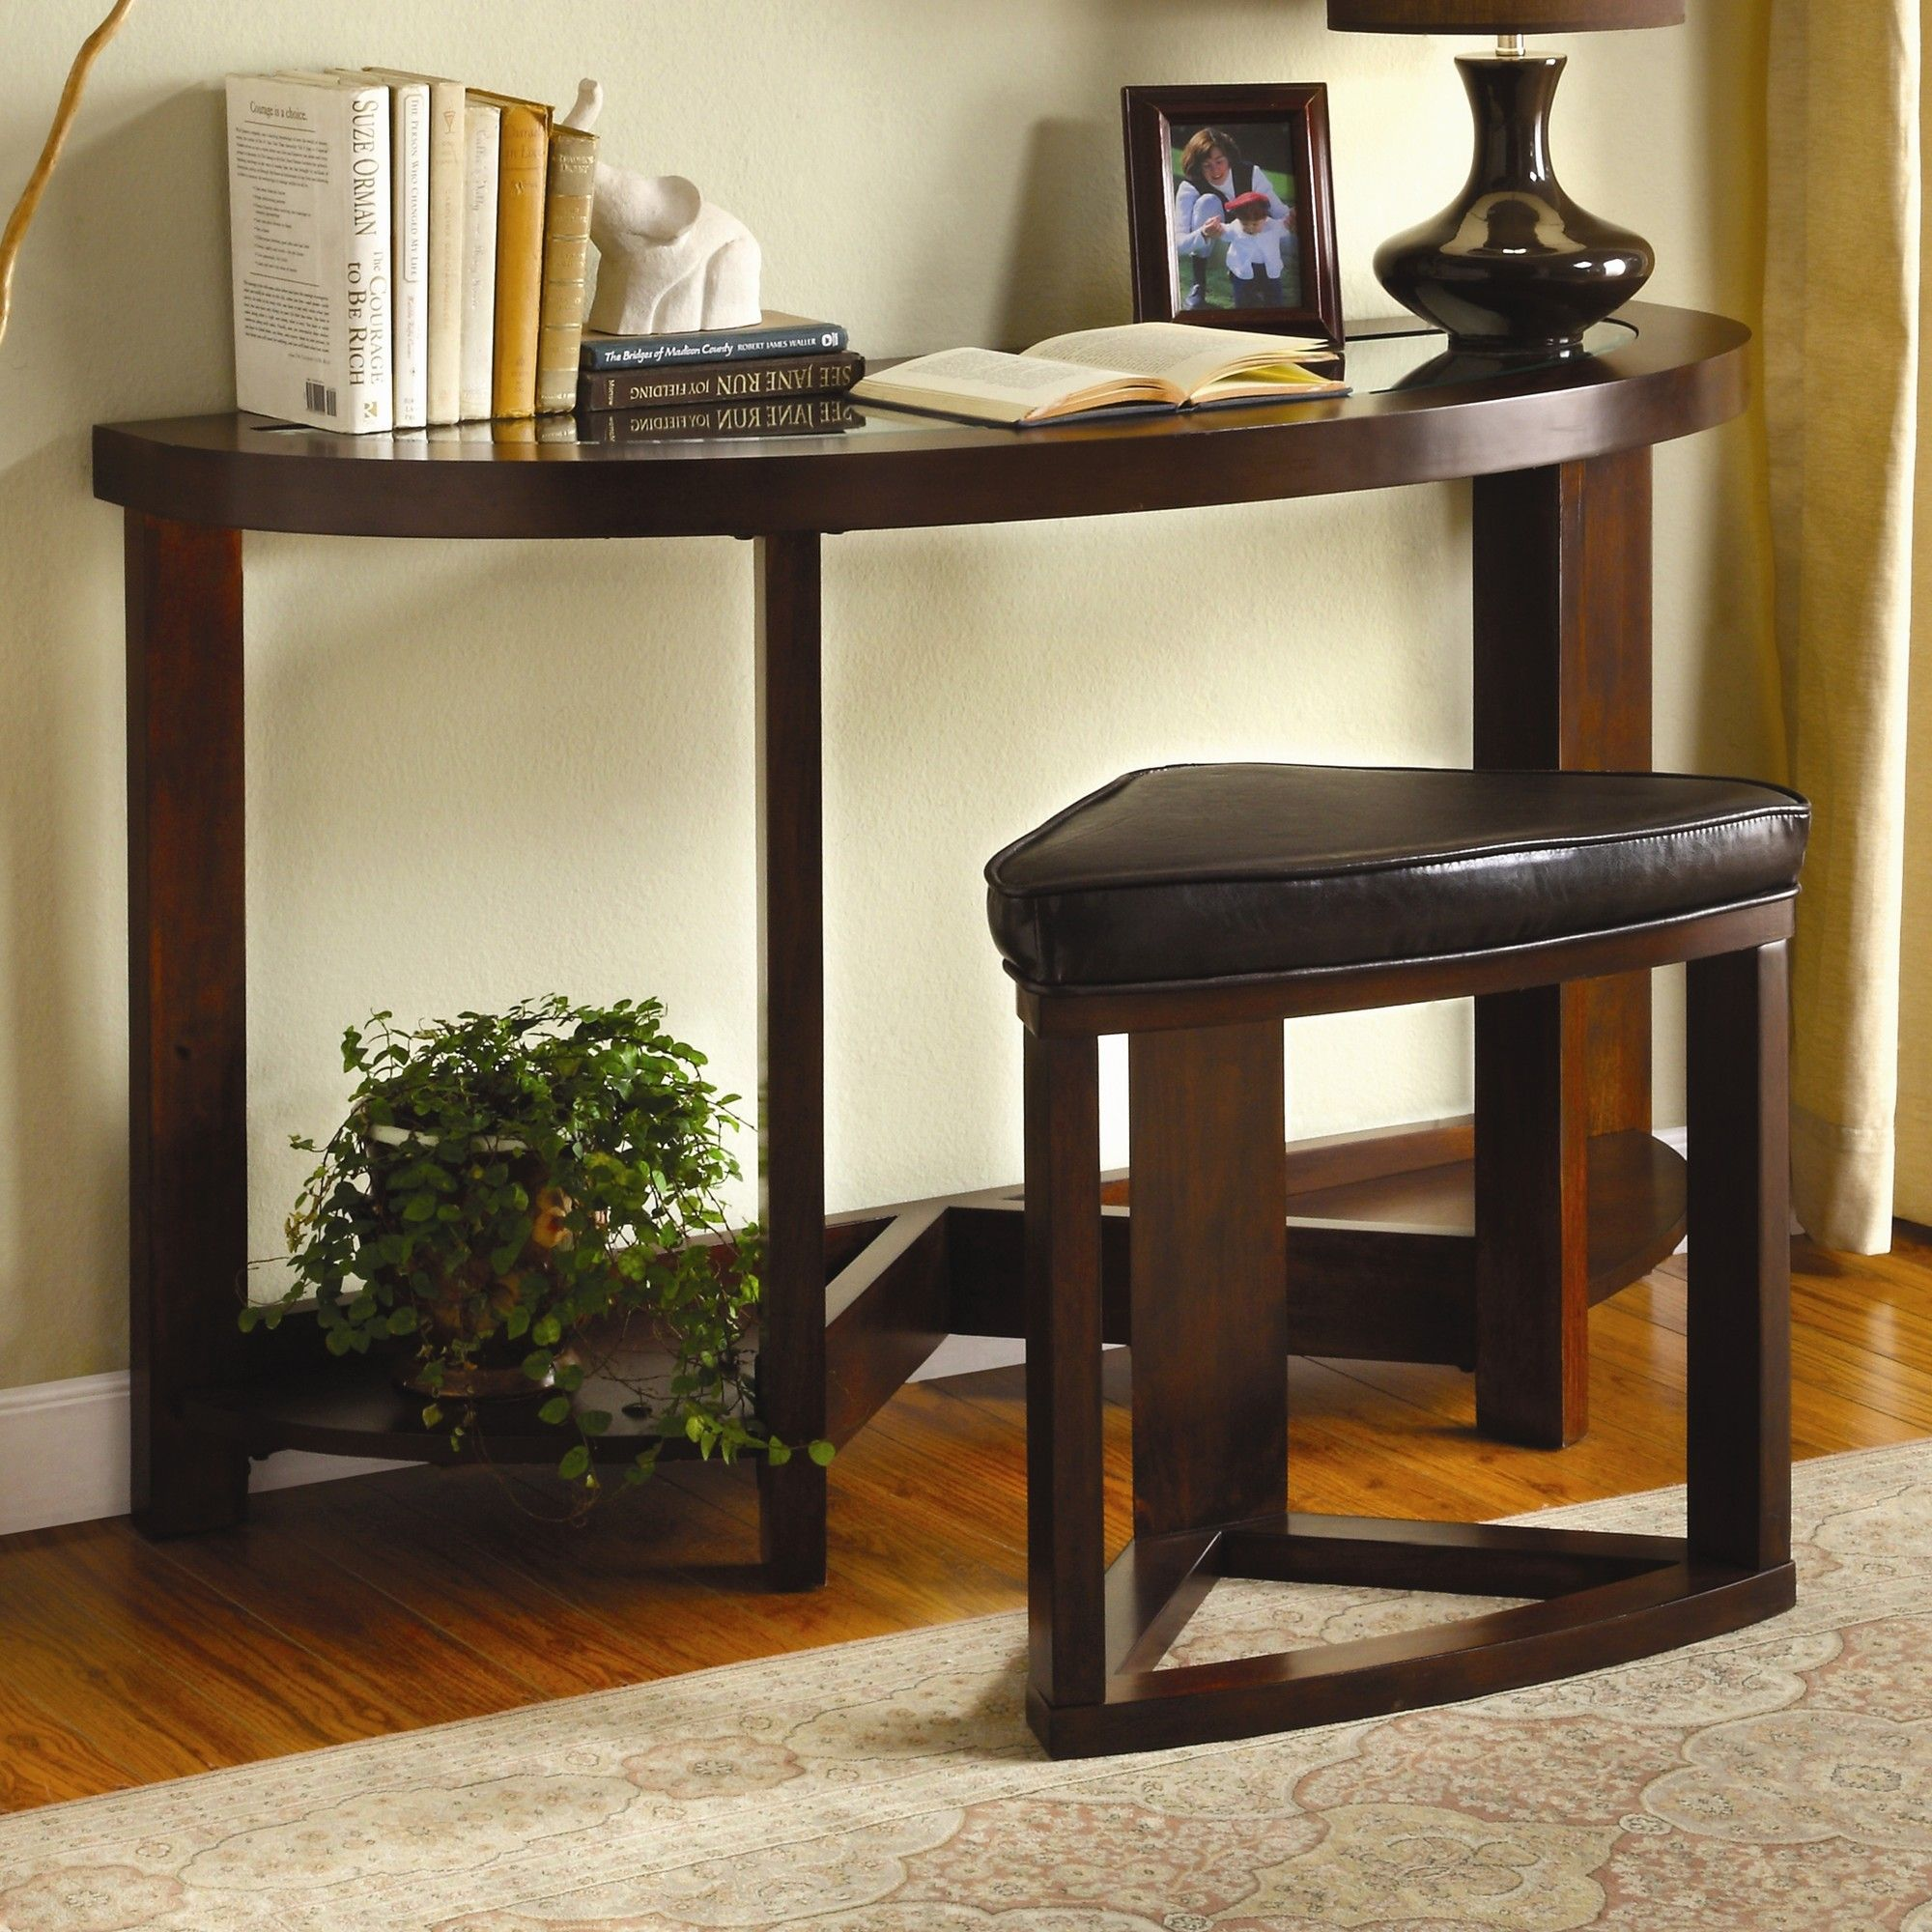 Get the right nesting console table and you instantly have a reading get the right nesting console table and you instantly have a reading table or writing desk watchthetrailerfo